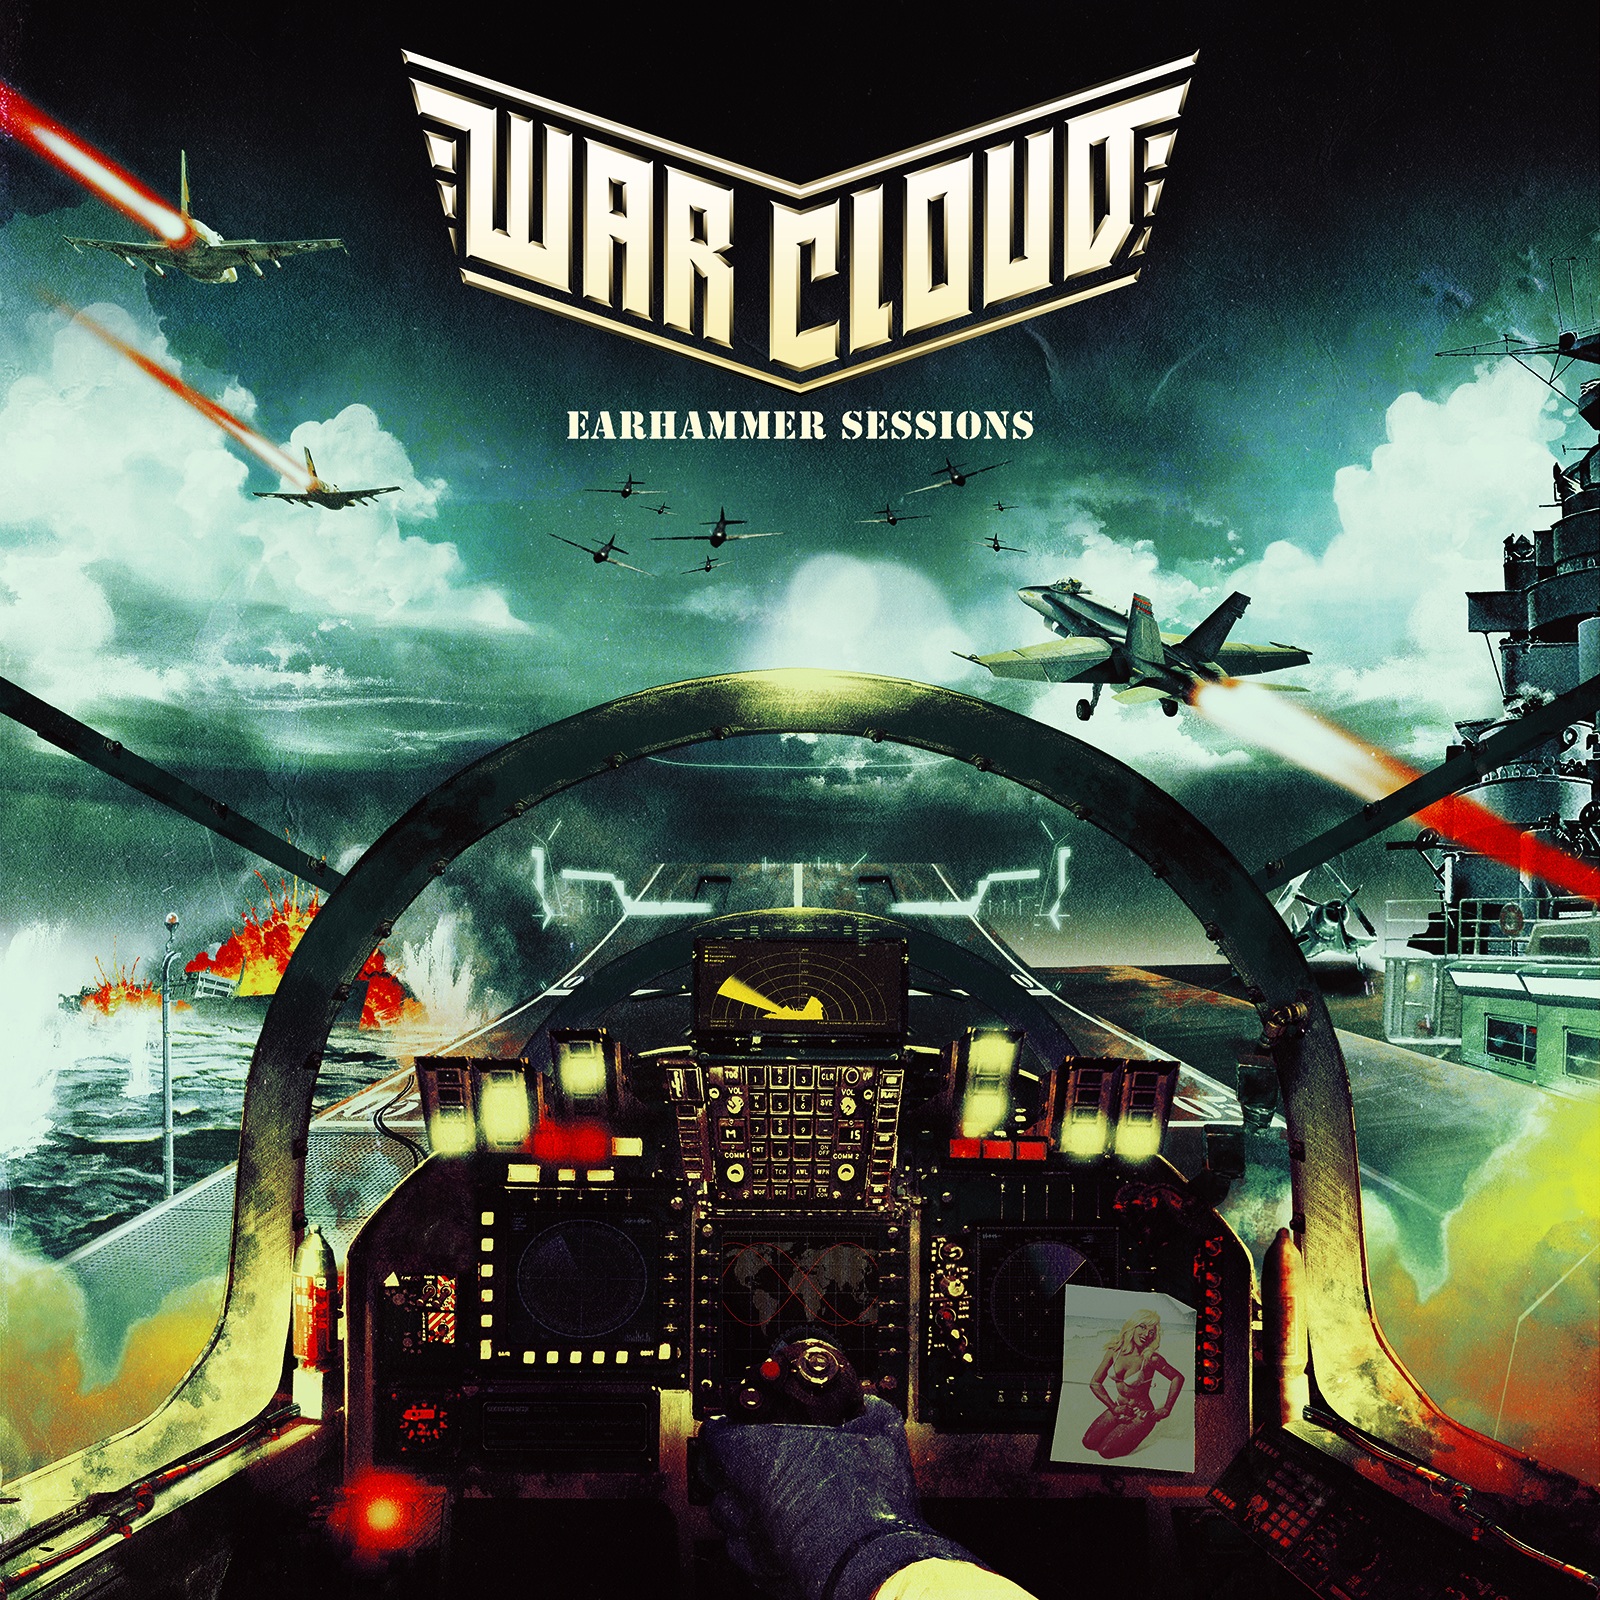 war cloud earhammer sessions